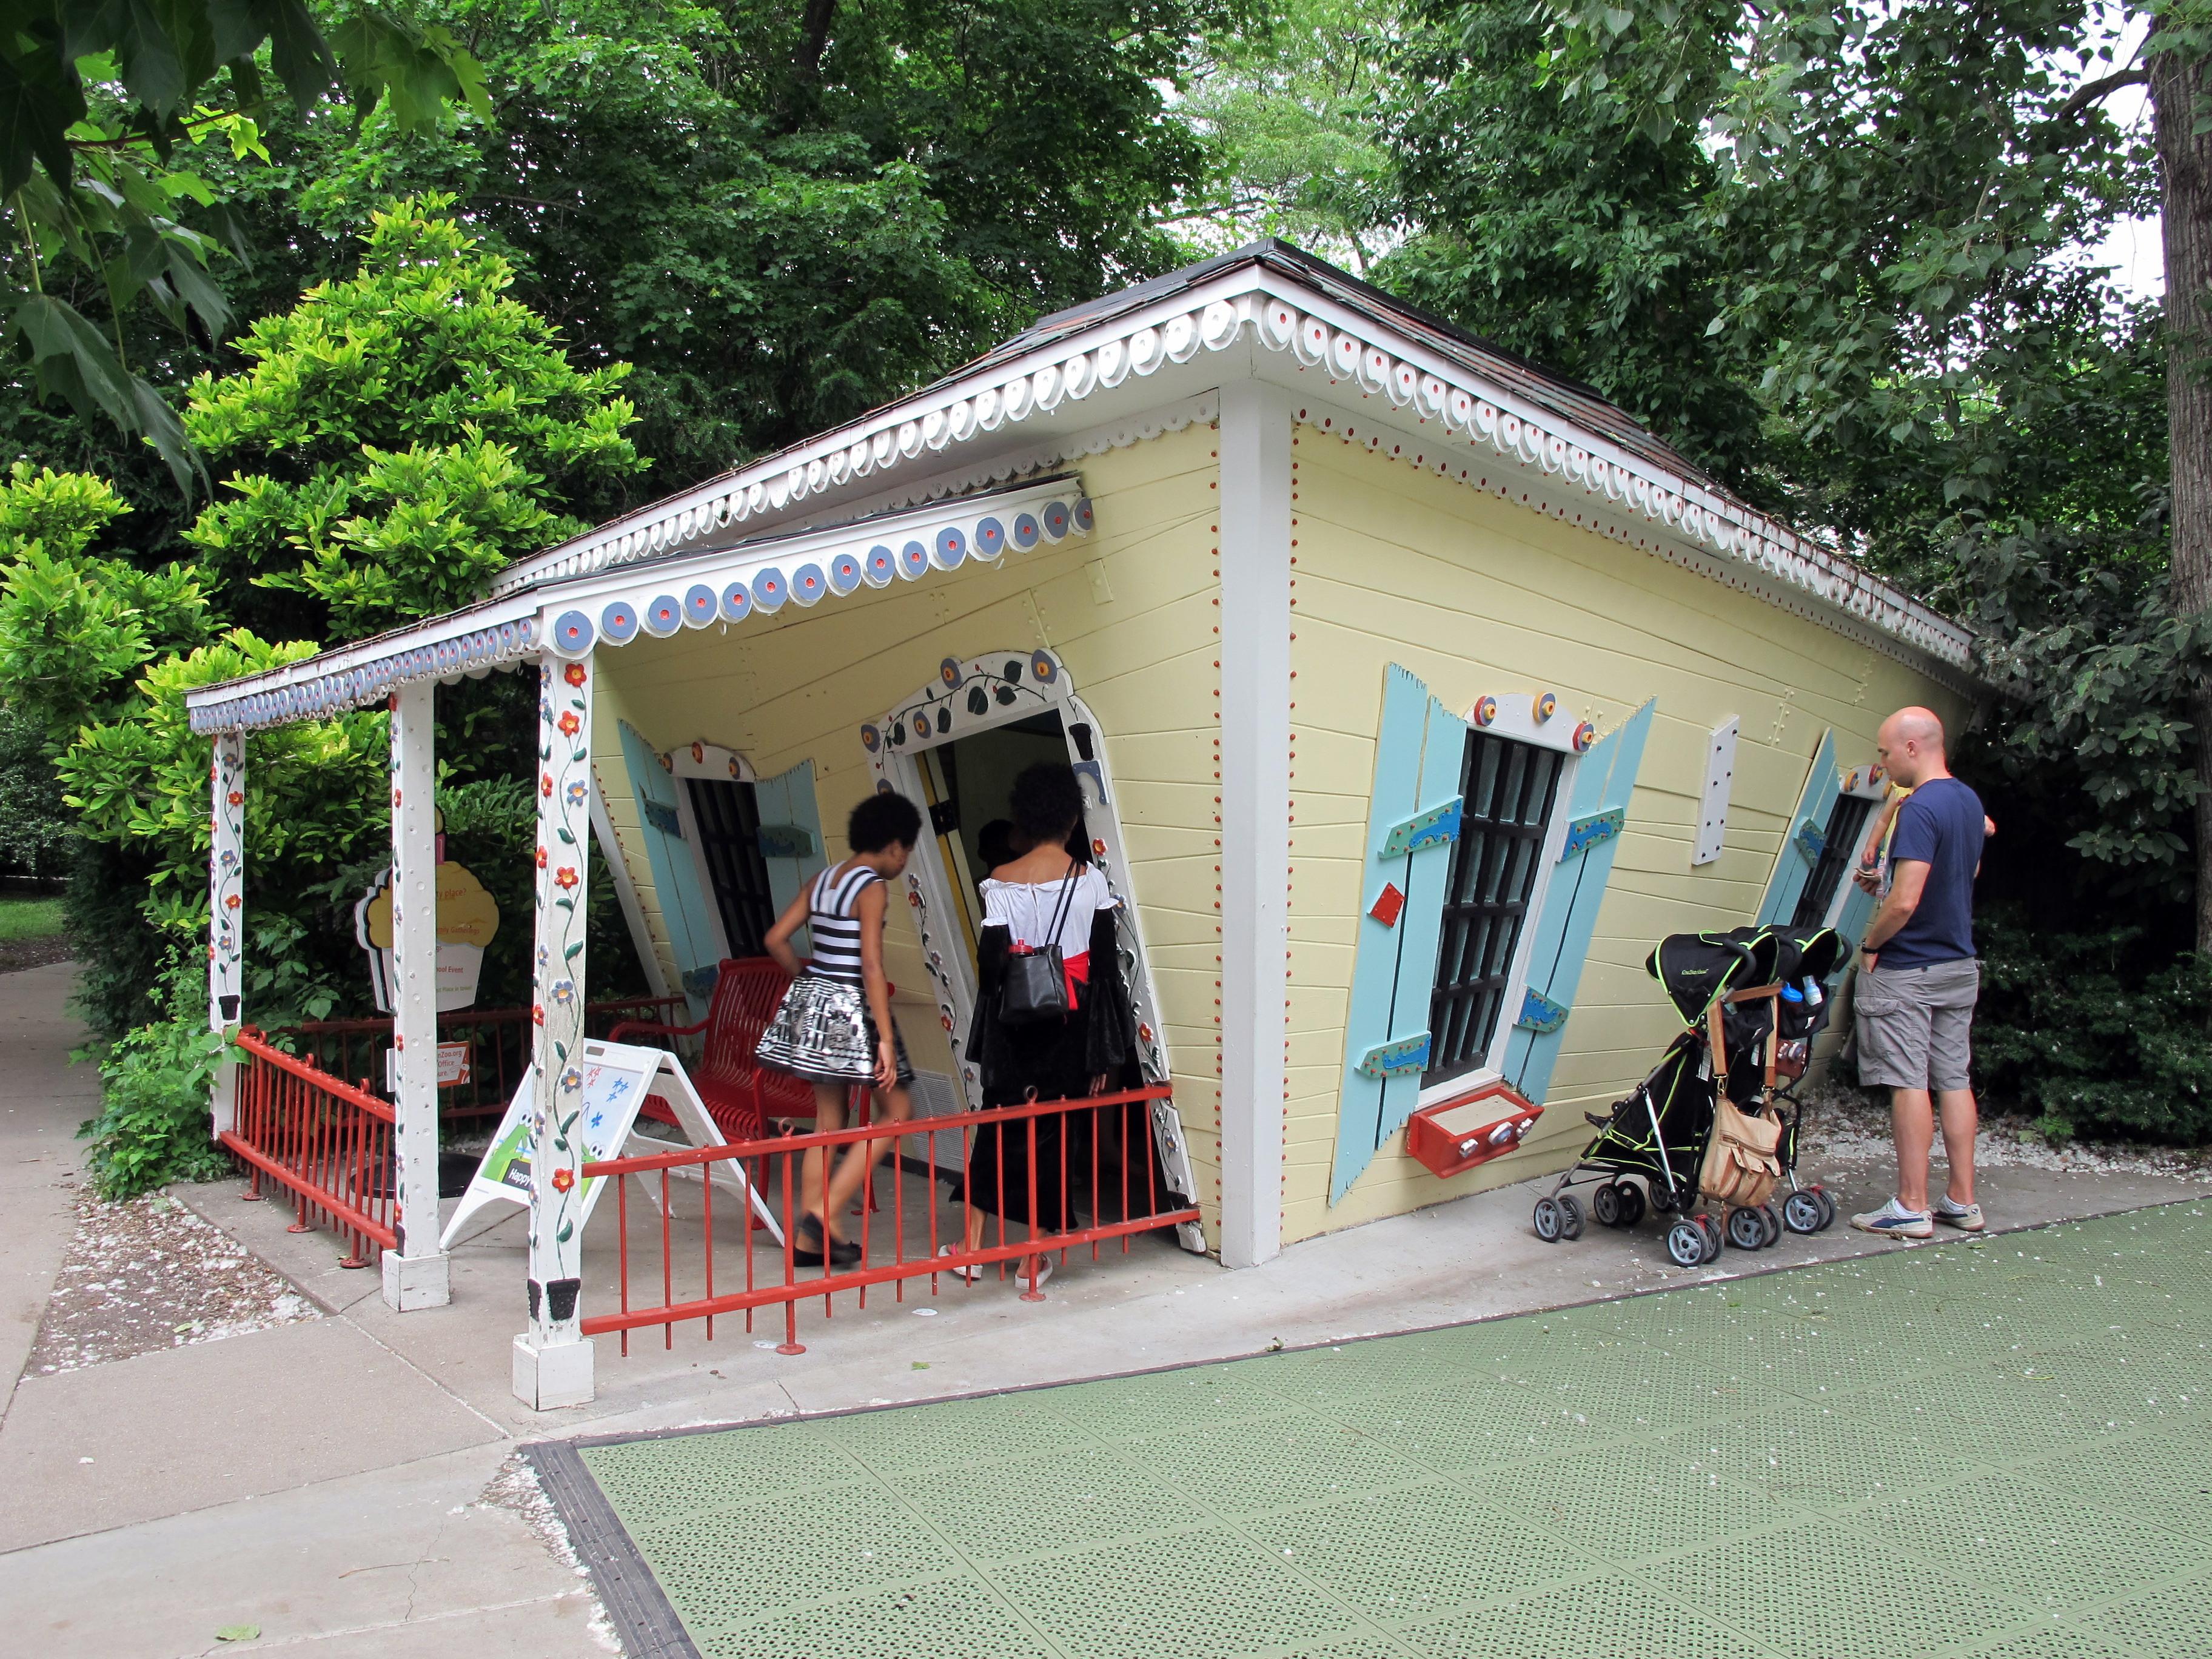 FileThe Crooked House Lincoln Childrens Zoo Lincoln Nebraska - Lincoln children's zoo birthday party